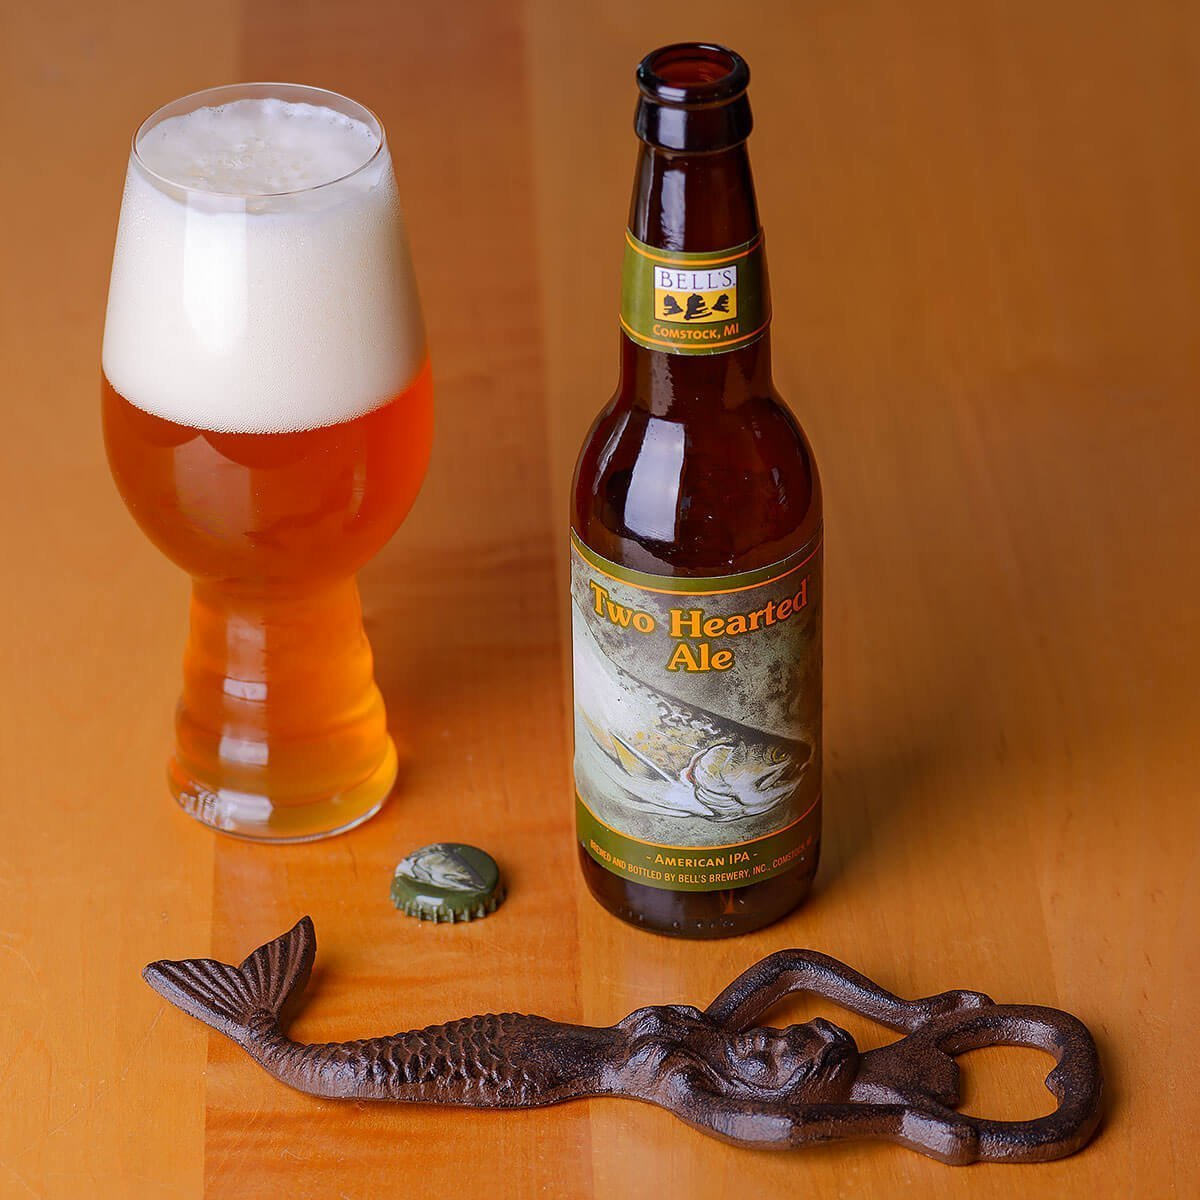 Two Hearted Ale is an American IPA by Bell's Brewery, Inc. that brilliantly balances Centennial powered hops flavors of citrus and pine with a hefty malt backbone.